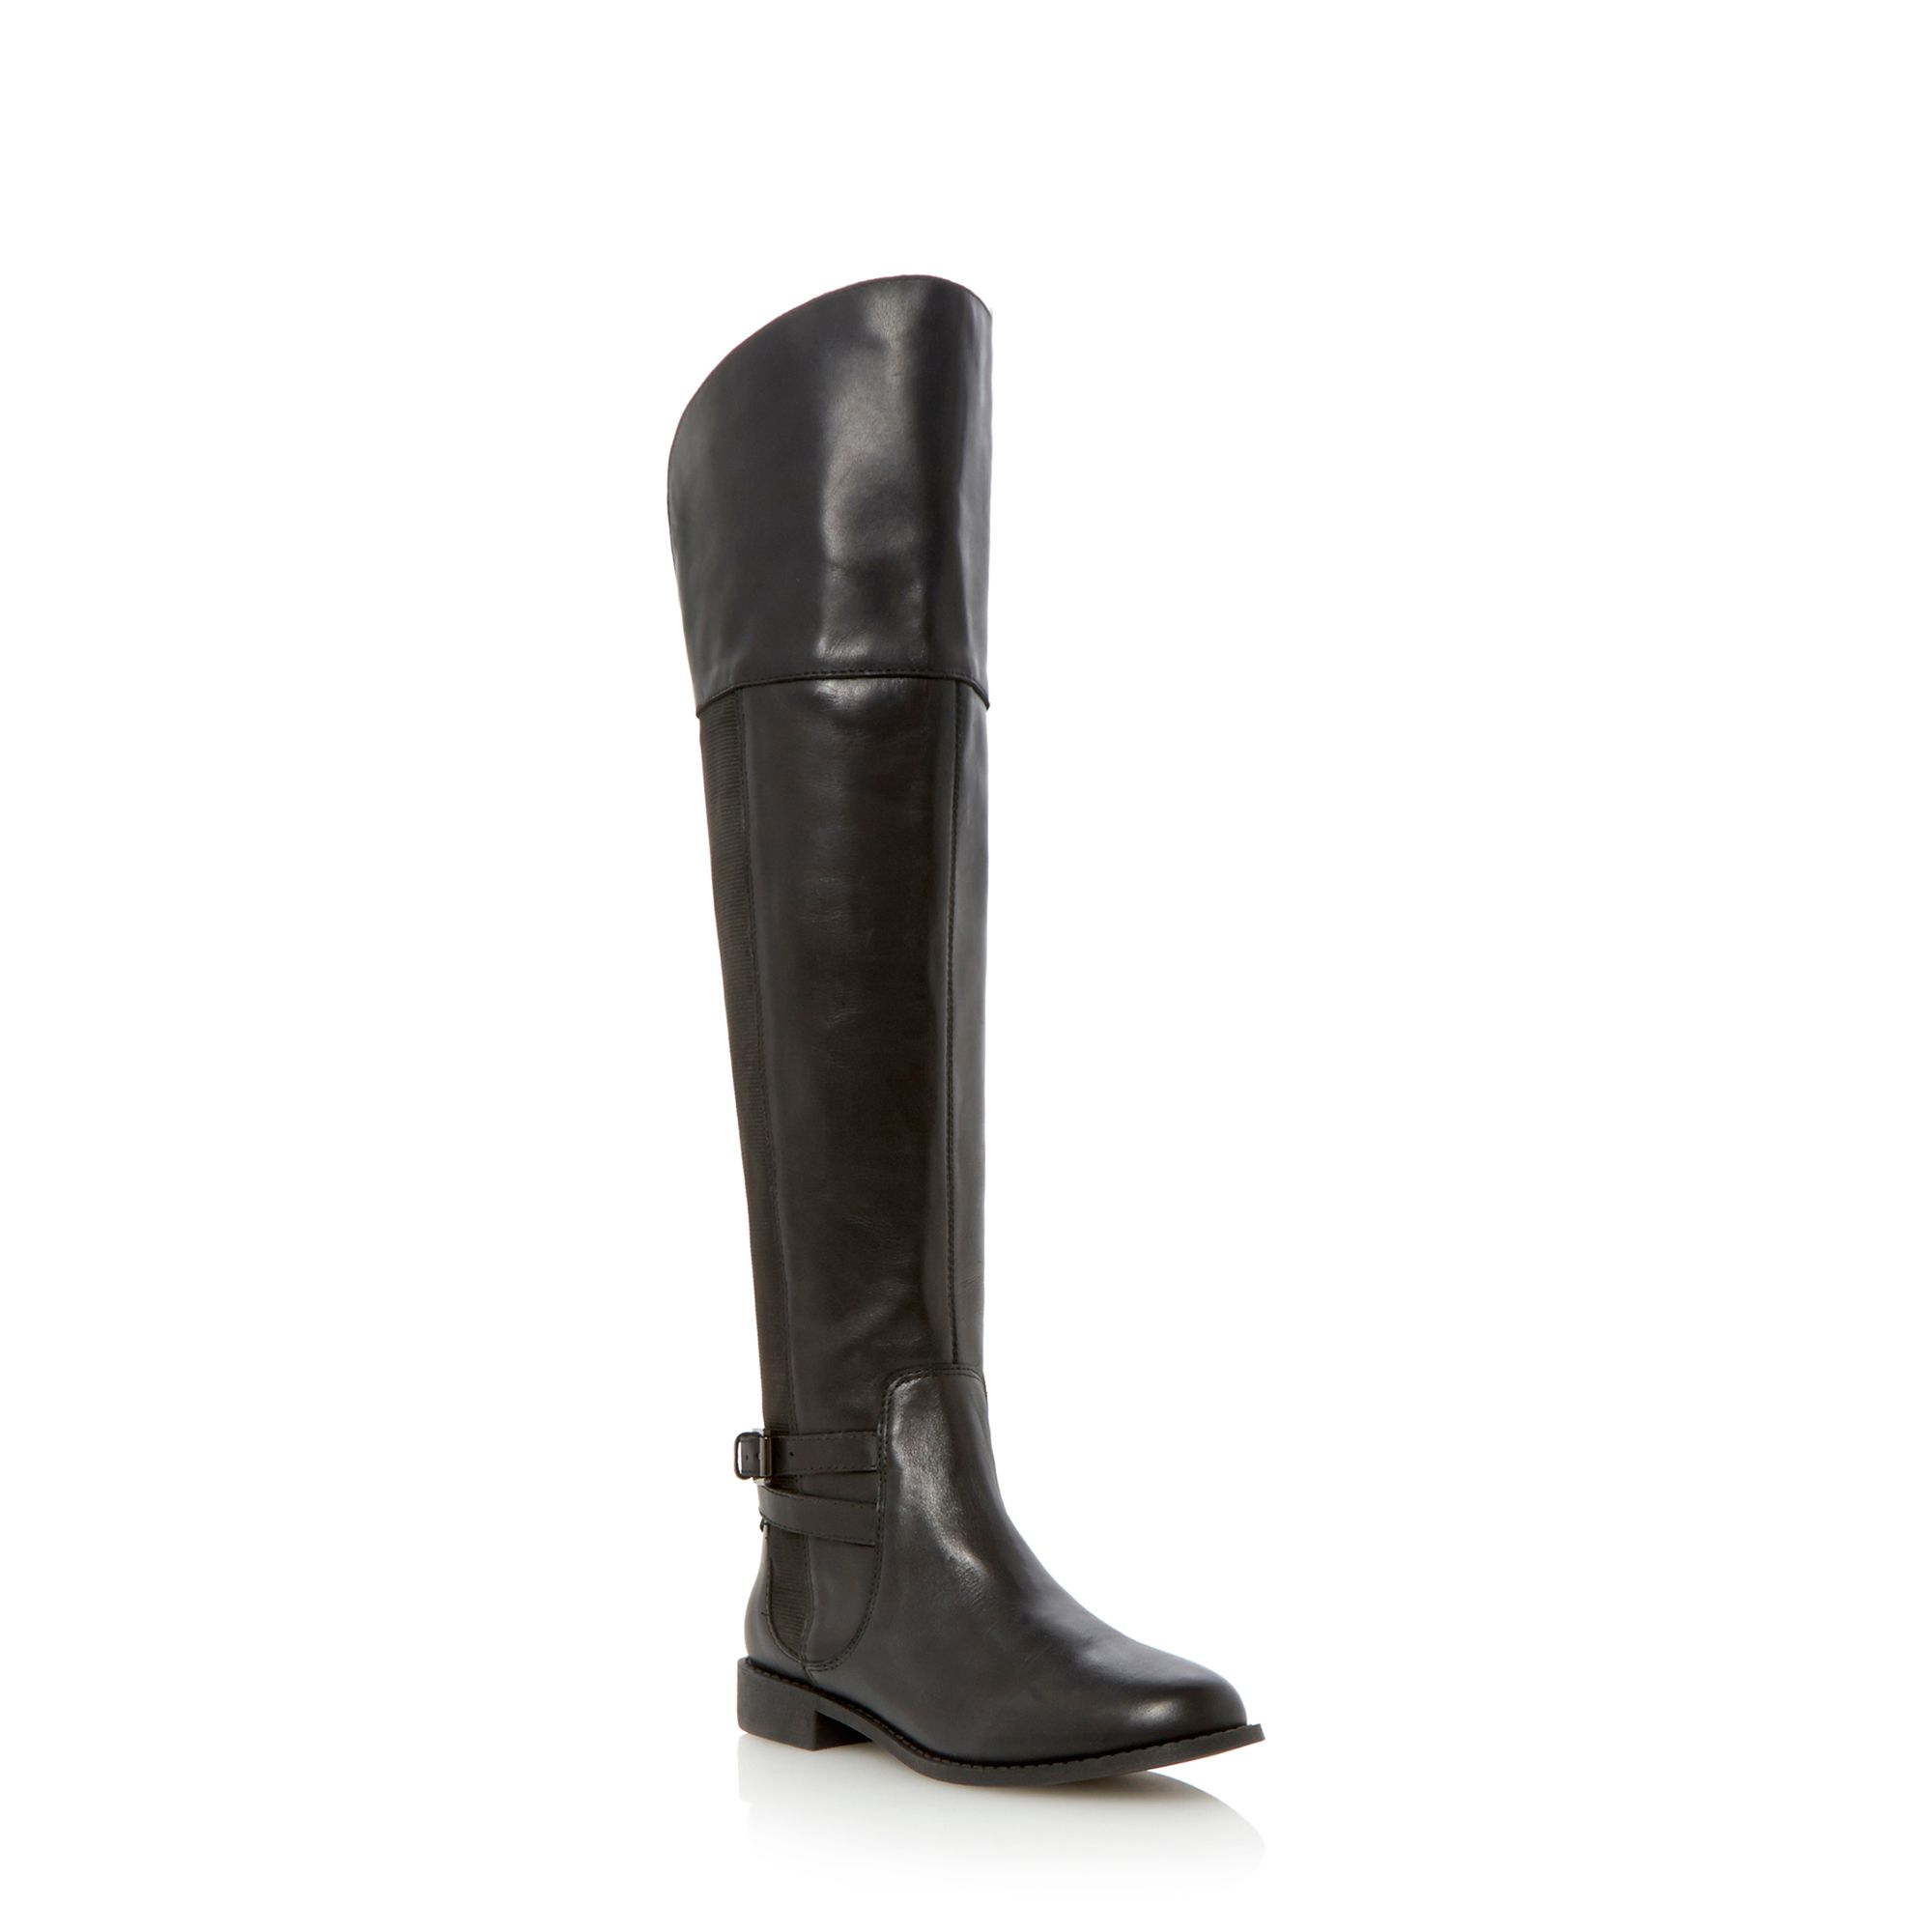 Trowbridge leather almond toe flat knee boots